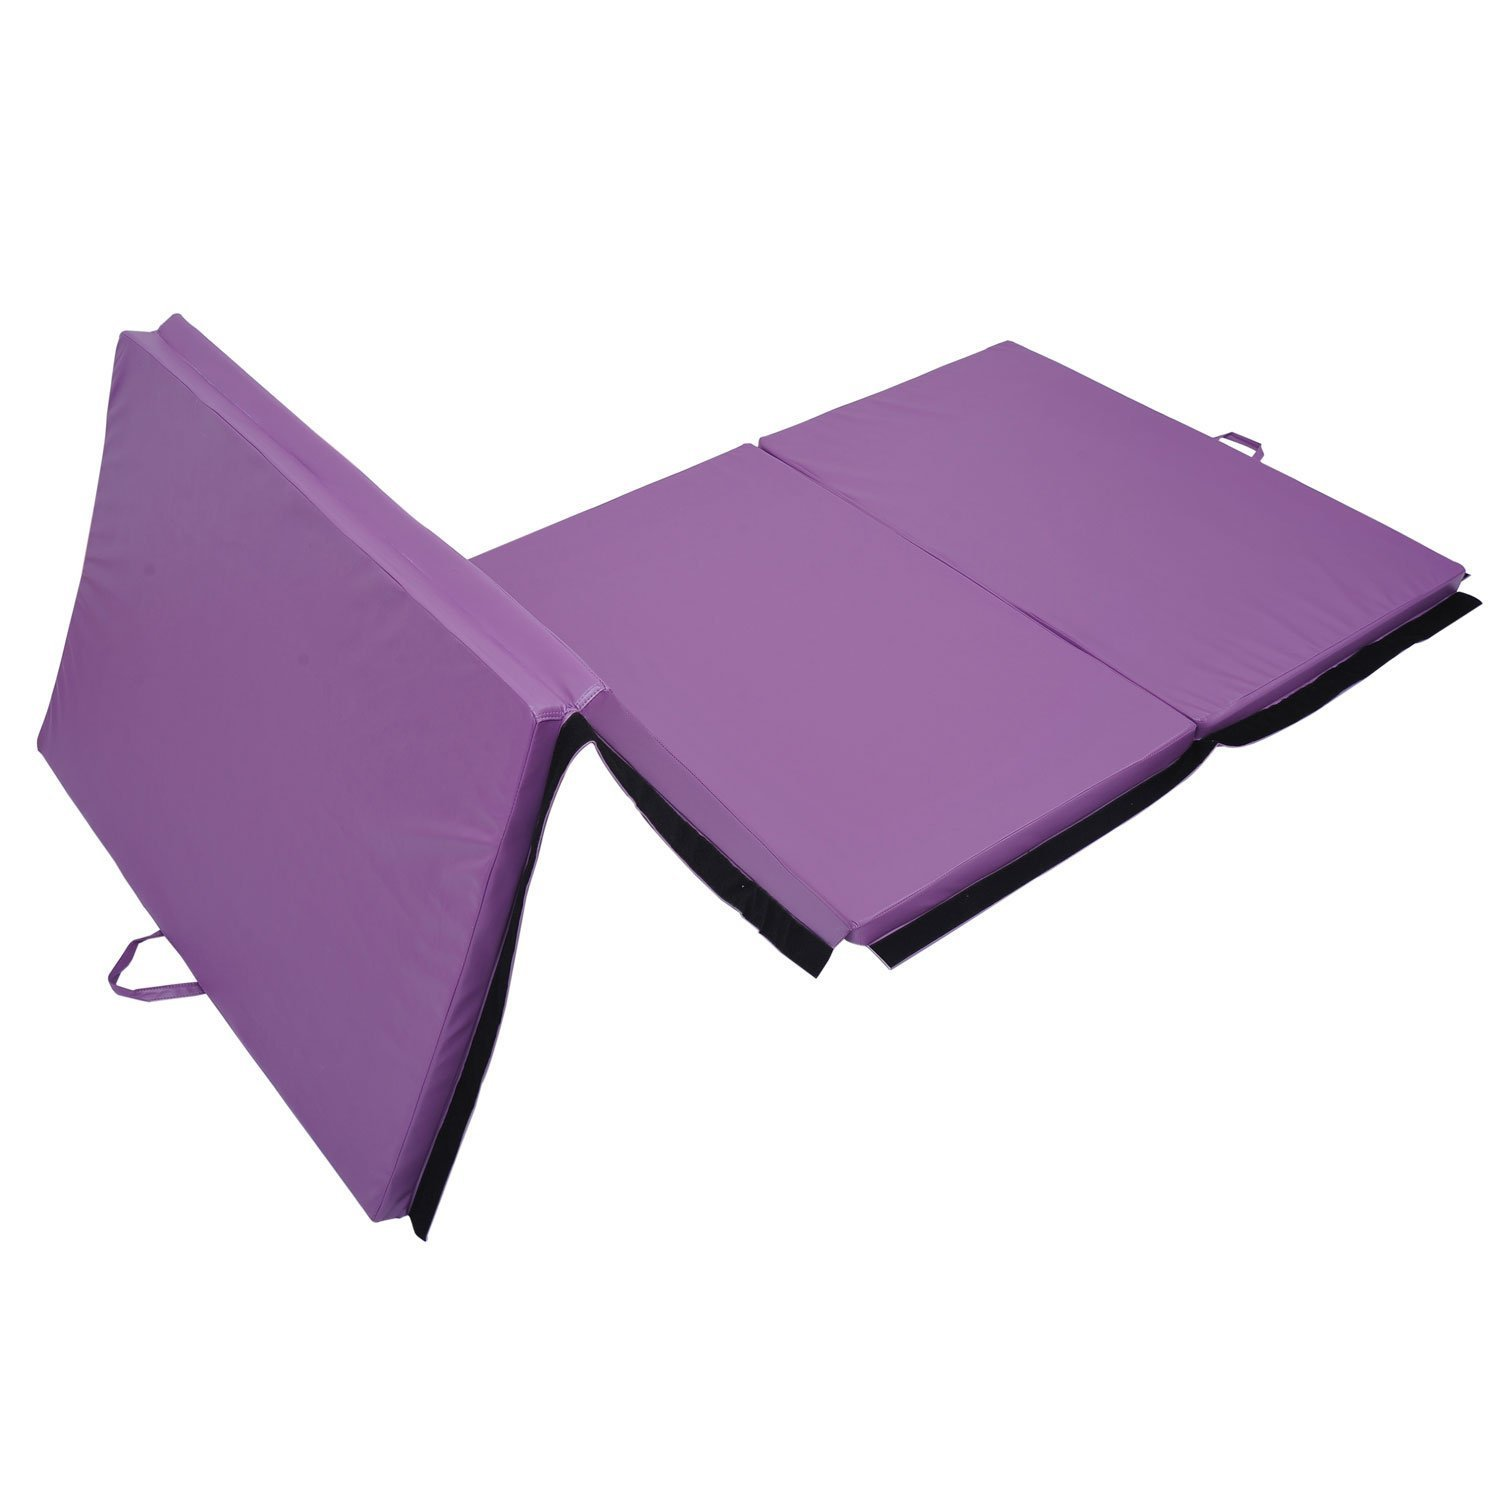 pin gymnastics mats thick mat pinterest for home